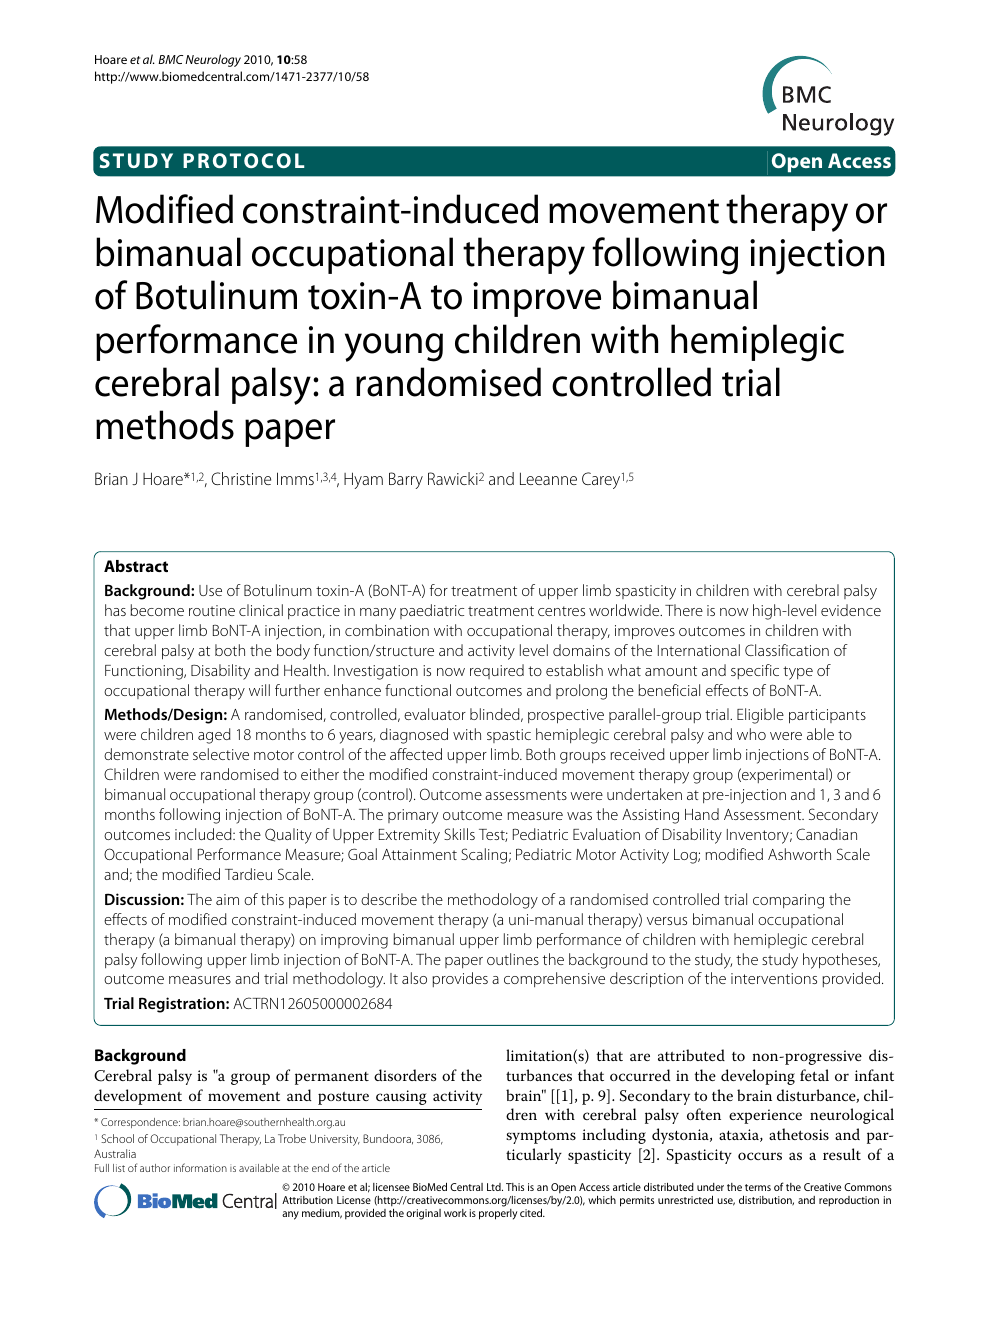 Modified constraint-induced movement therapy or bimanual